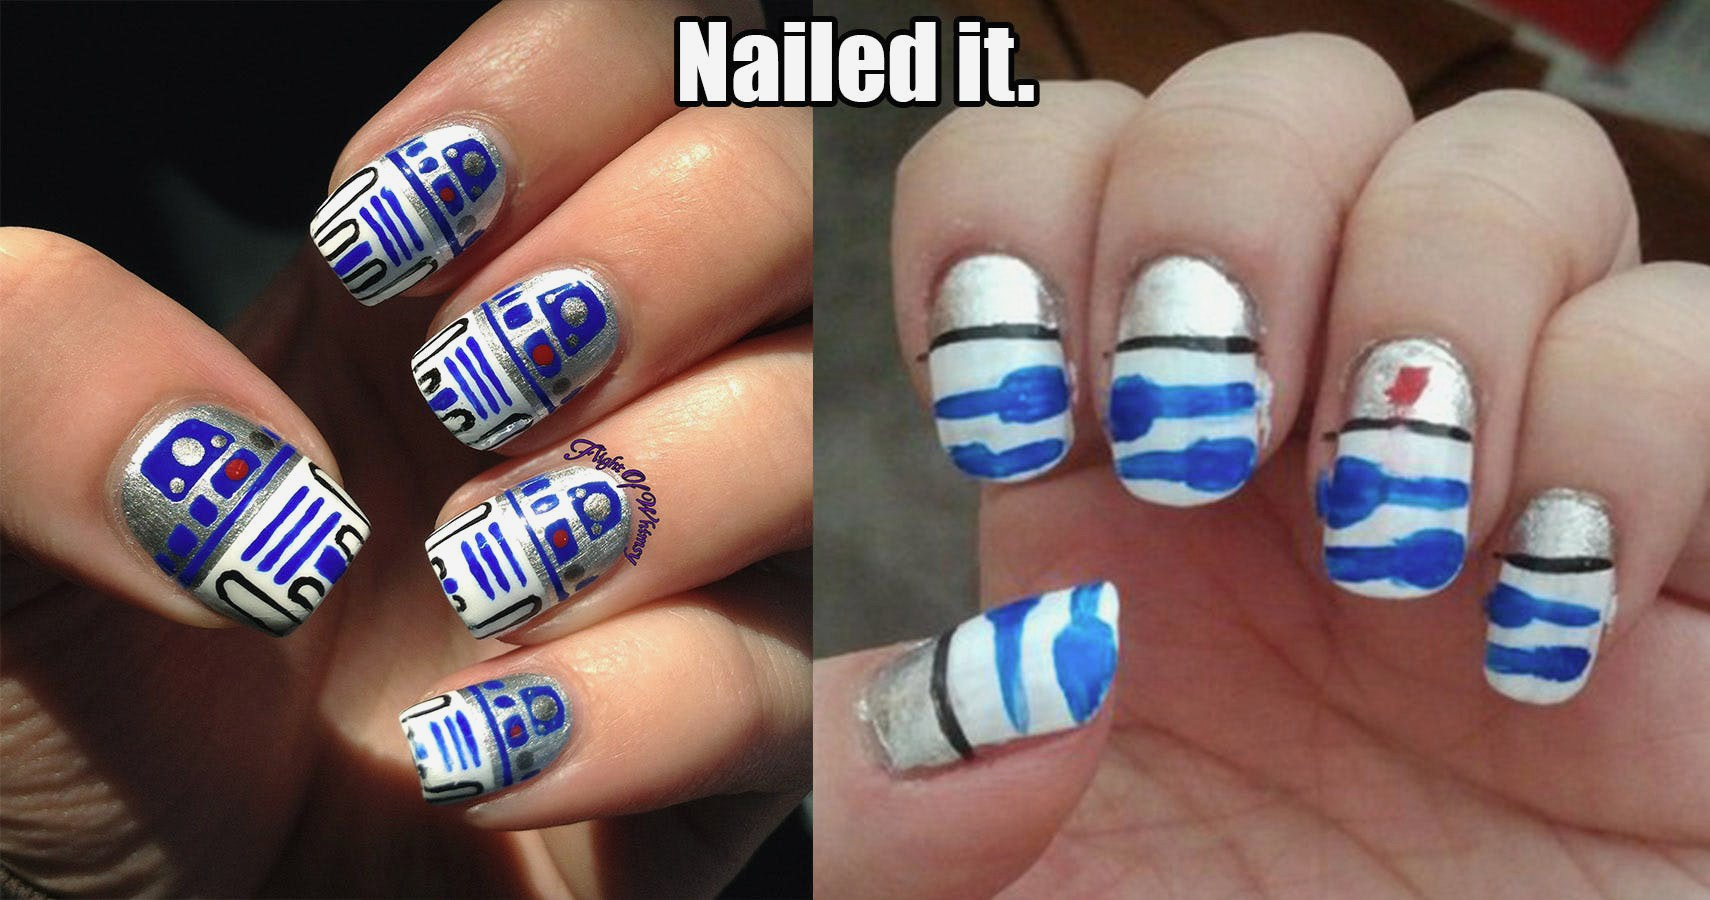 Nailed It - In case the Pinterest Fail is strong in you, there are fortunately easier options to achieve manicure perfection.